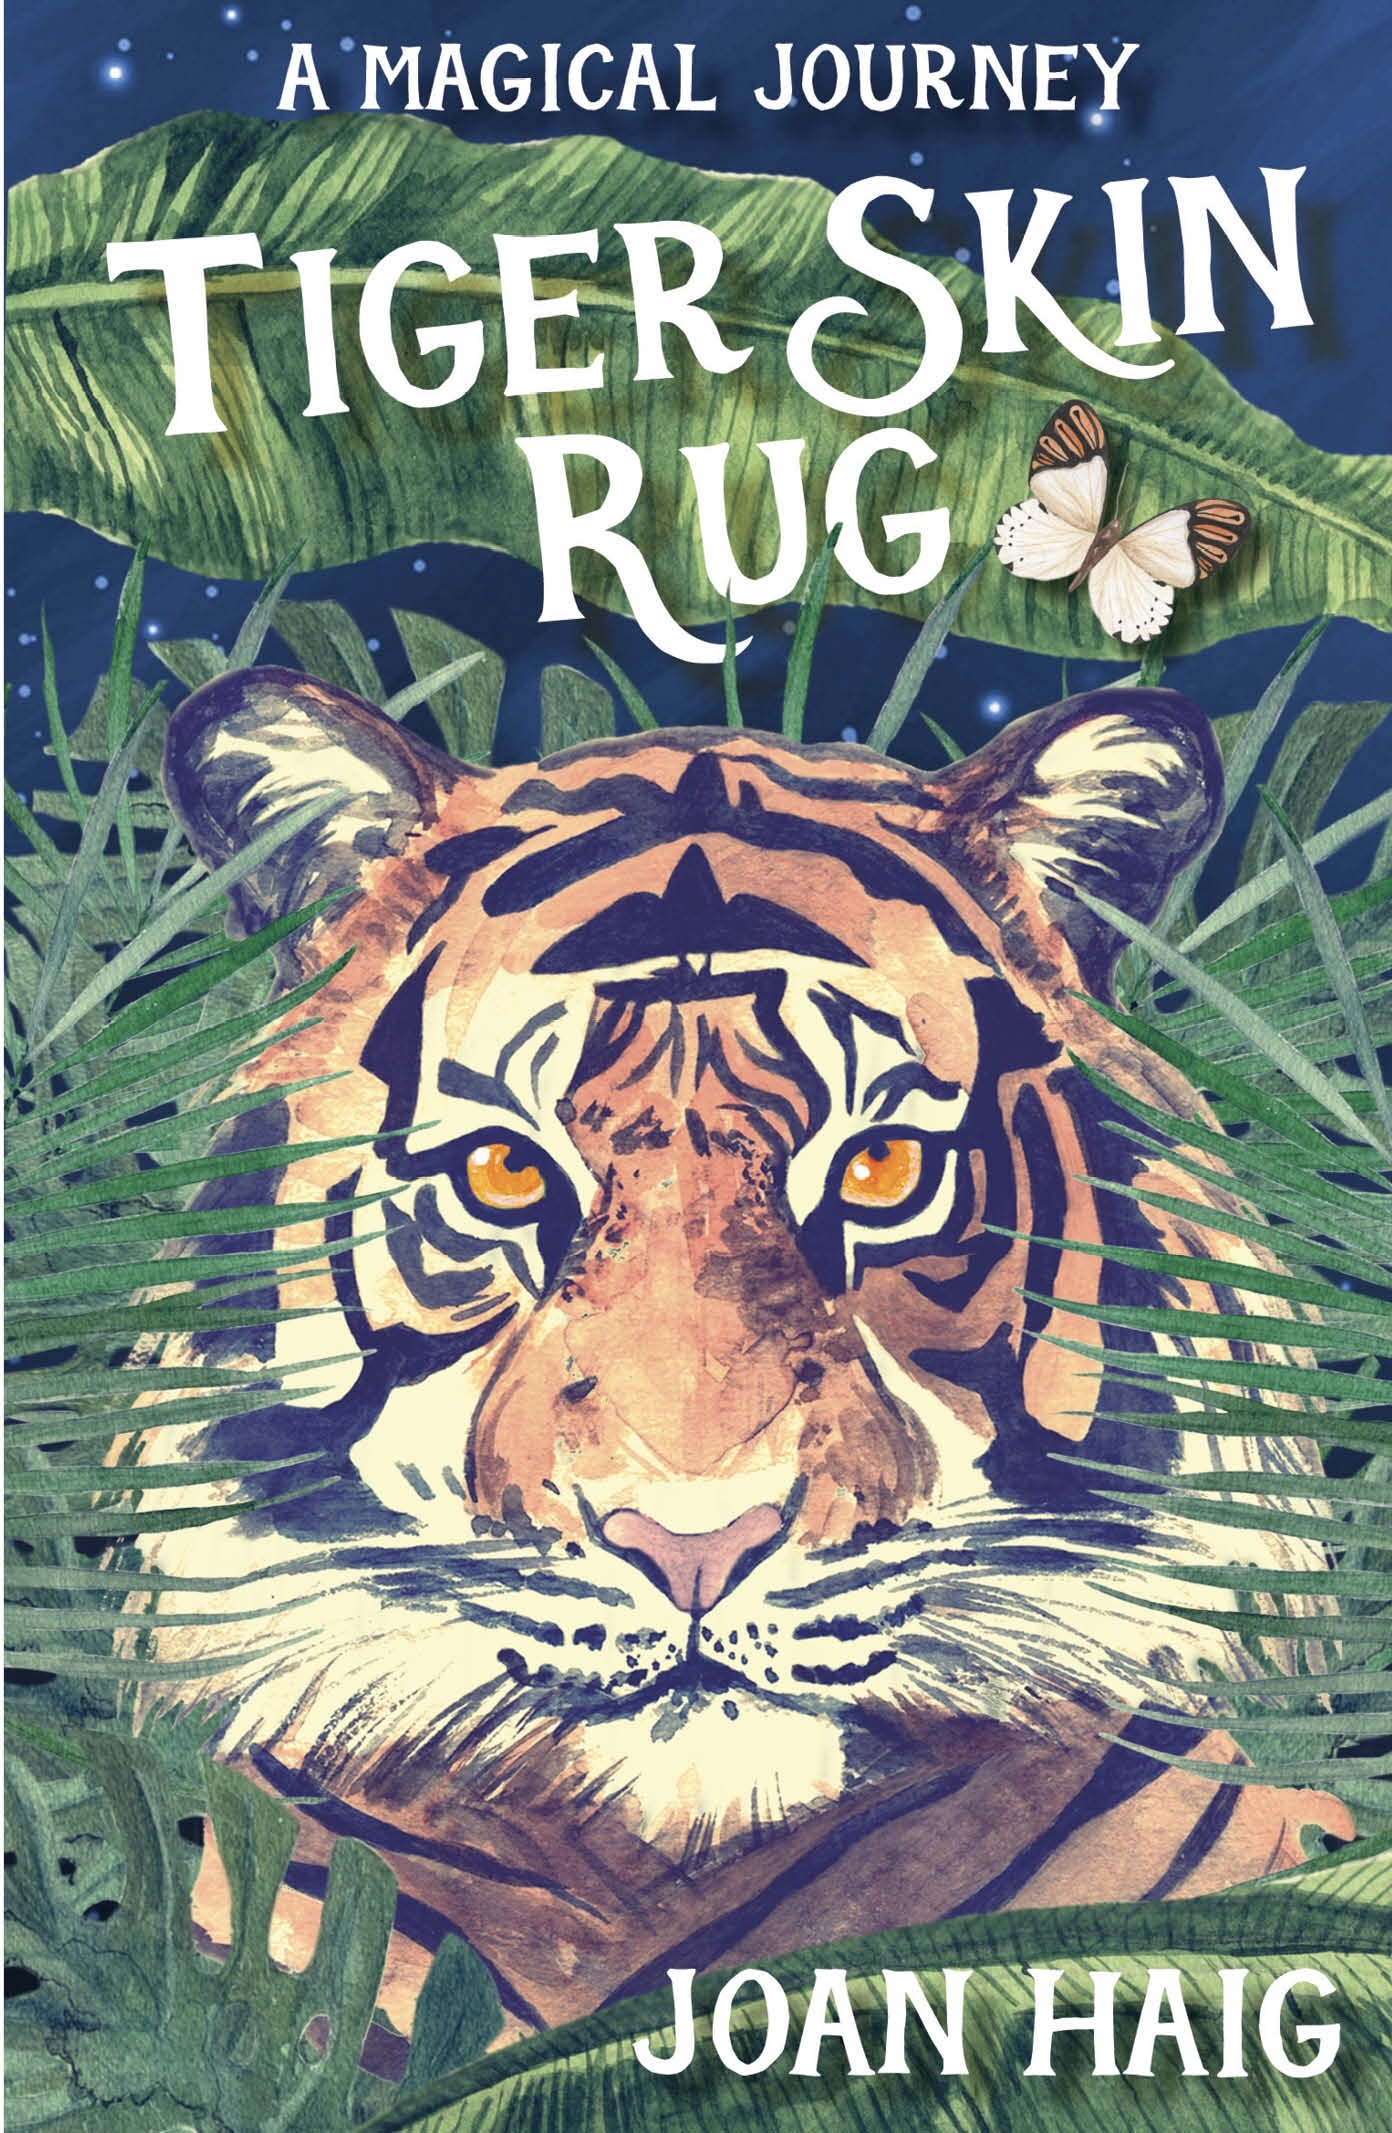 Tiger Skin Rug by Joan Haig – Get Kids into Books